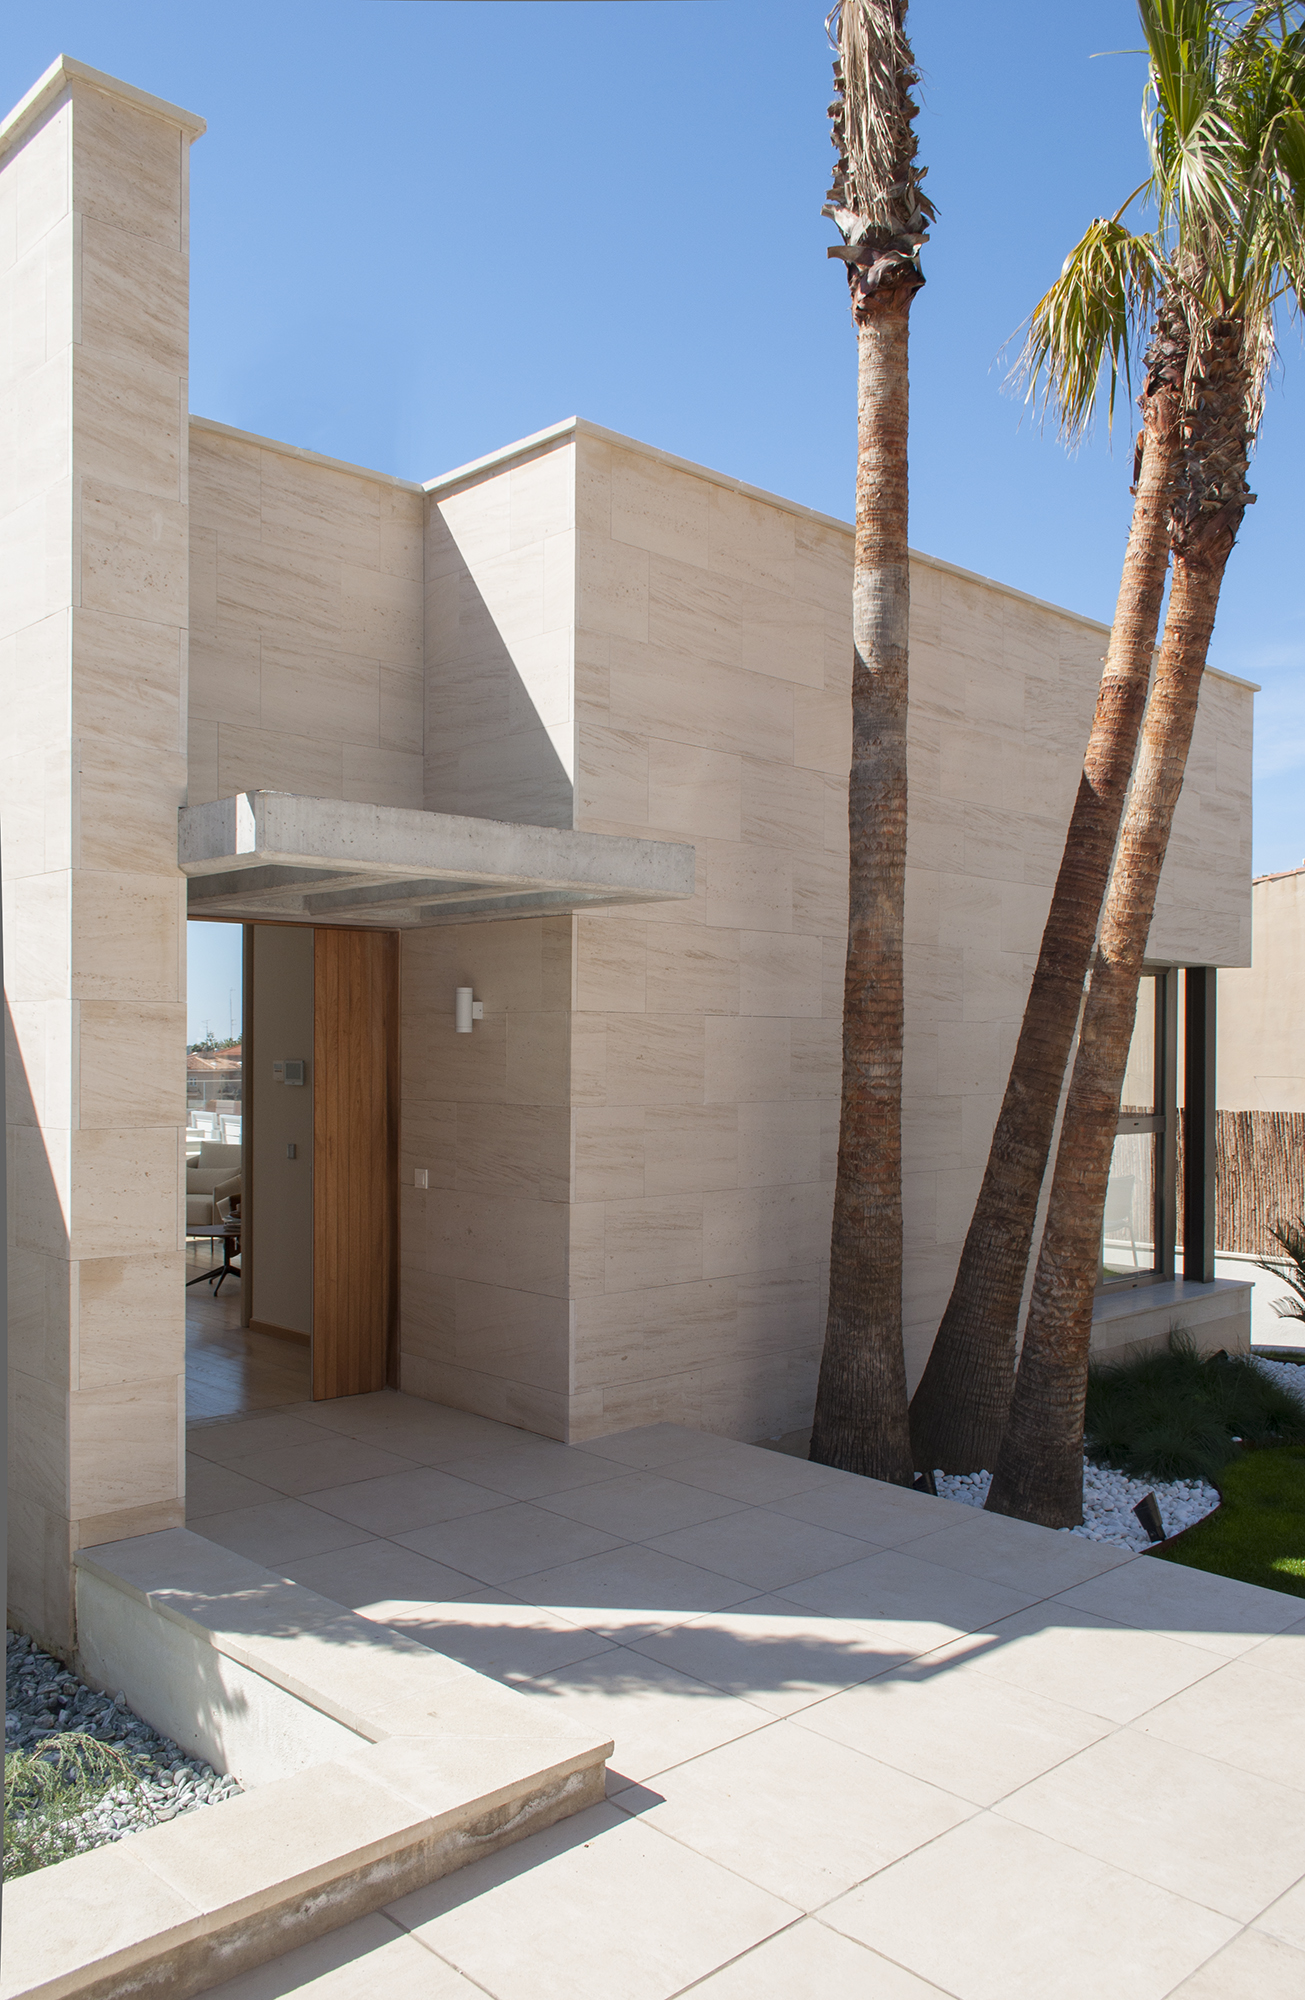 rardo architects houses in sitges & barcelona